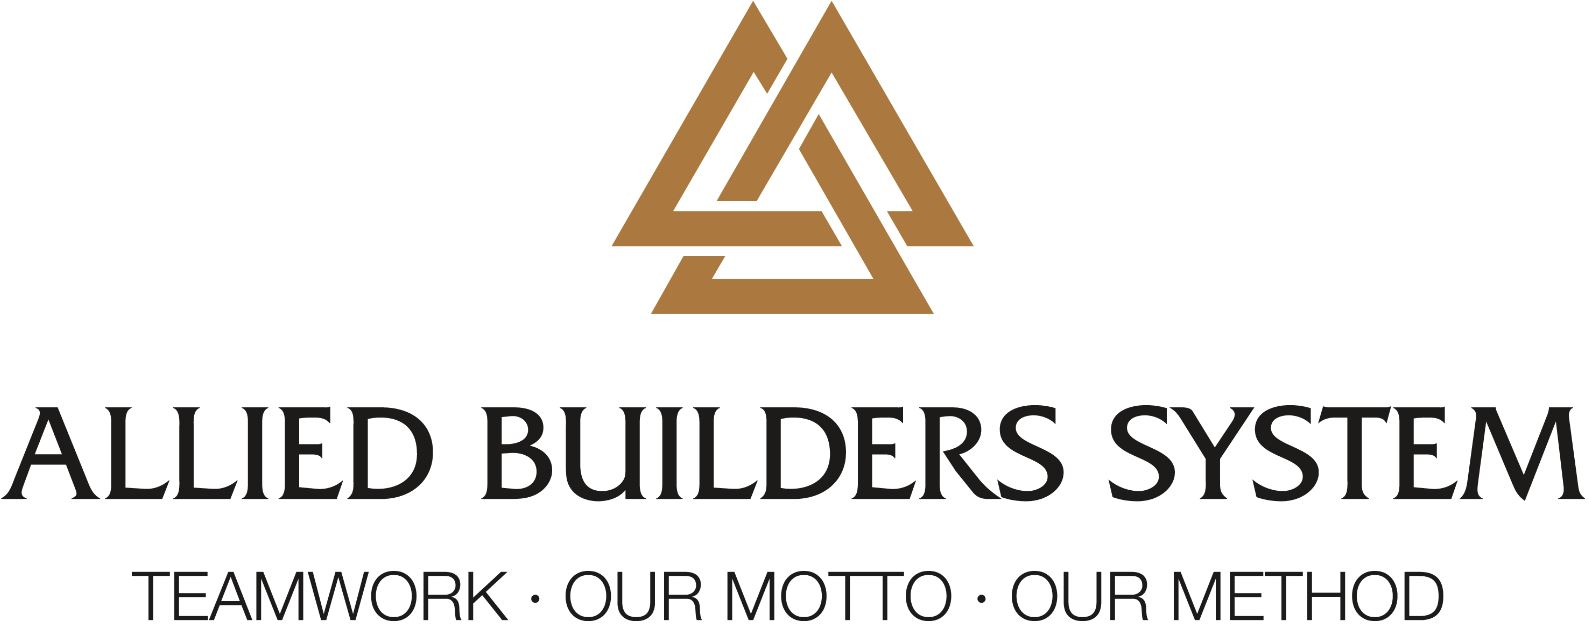 allied builders system